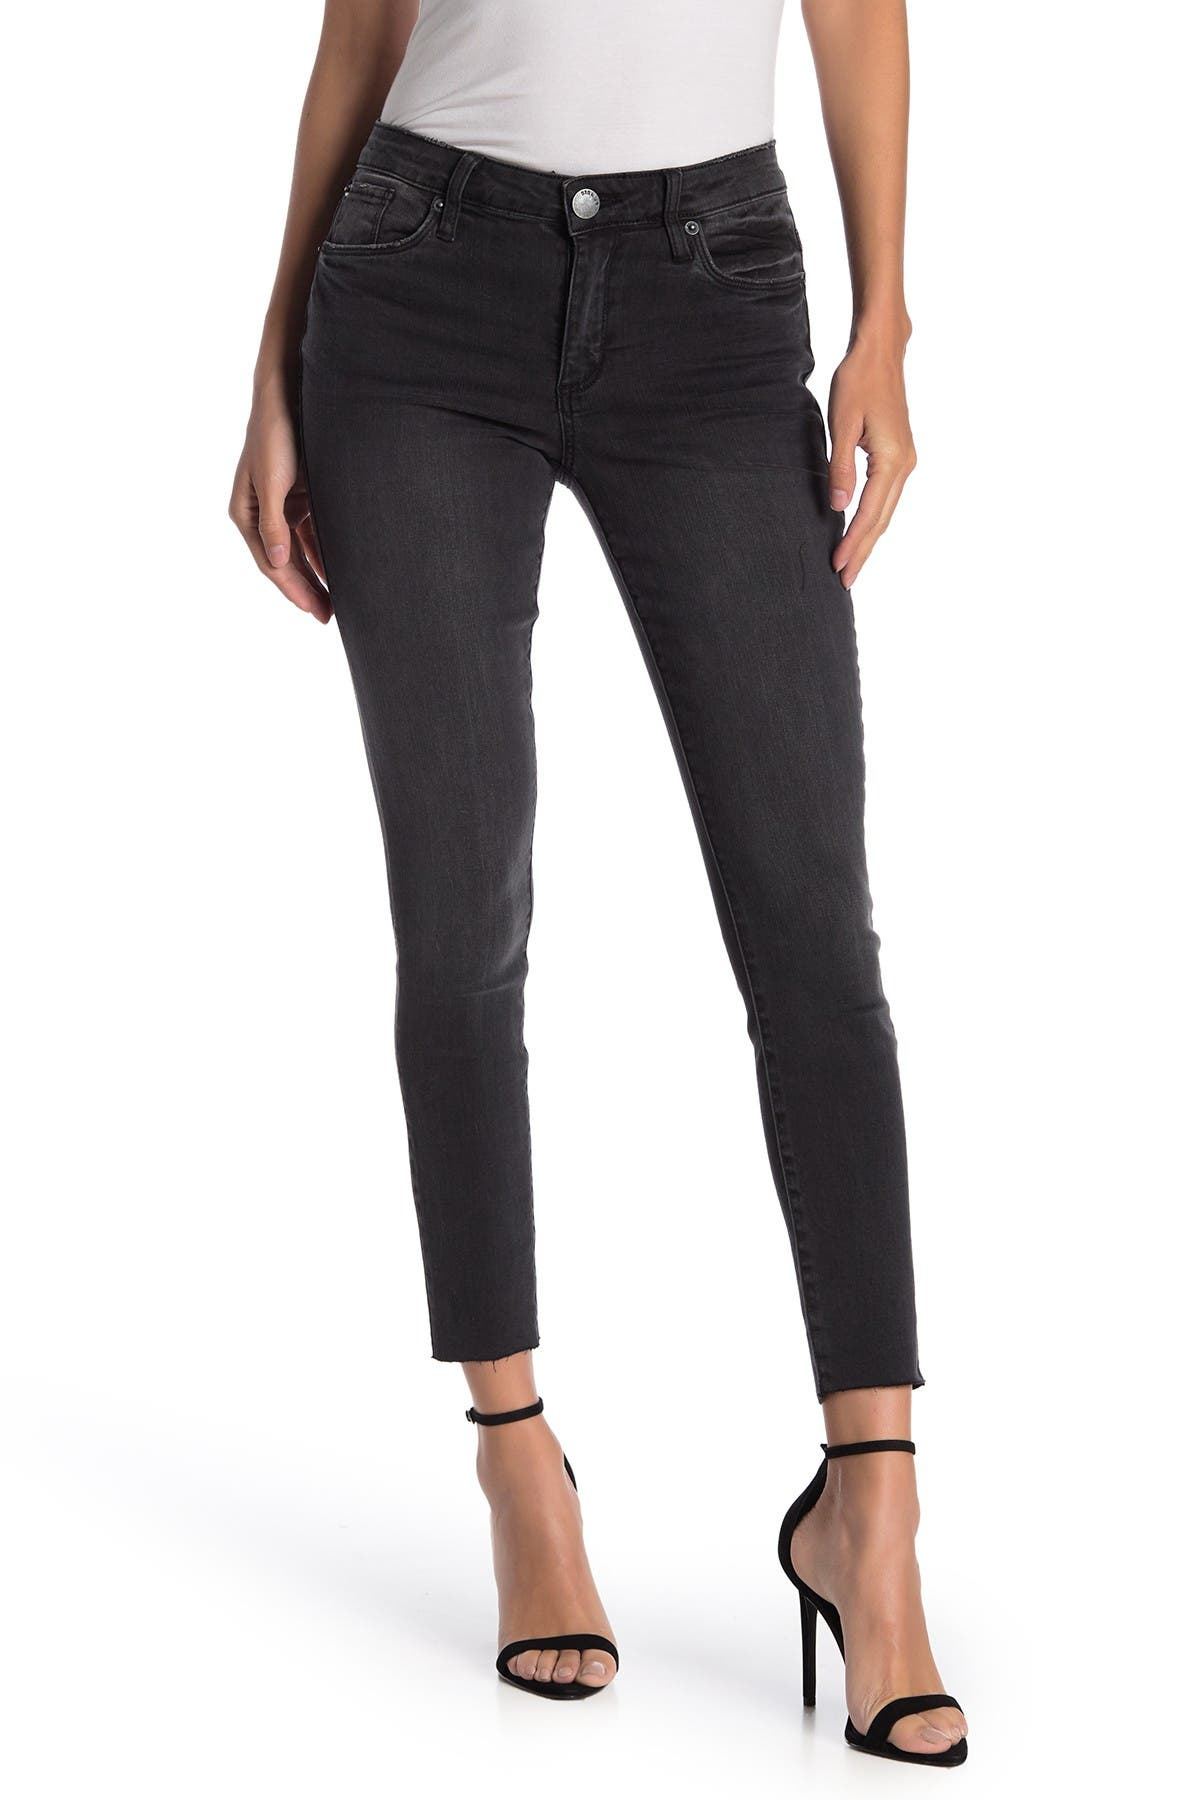 Image of STS BLUE Emma Mid Rise Raw Hem Skinny Jeans